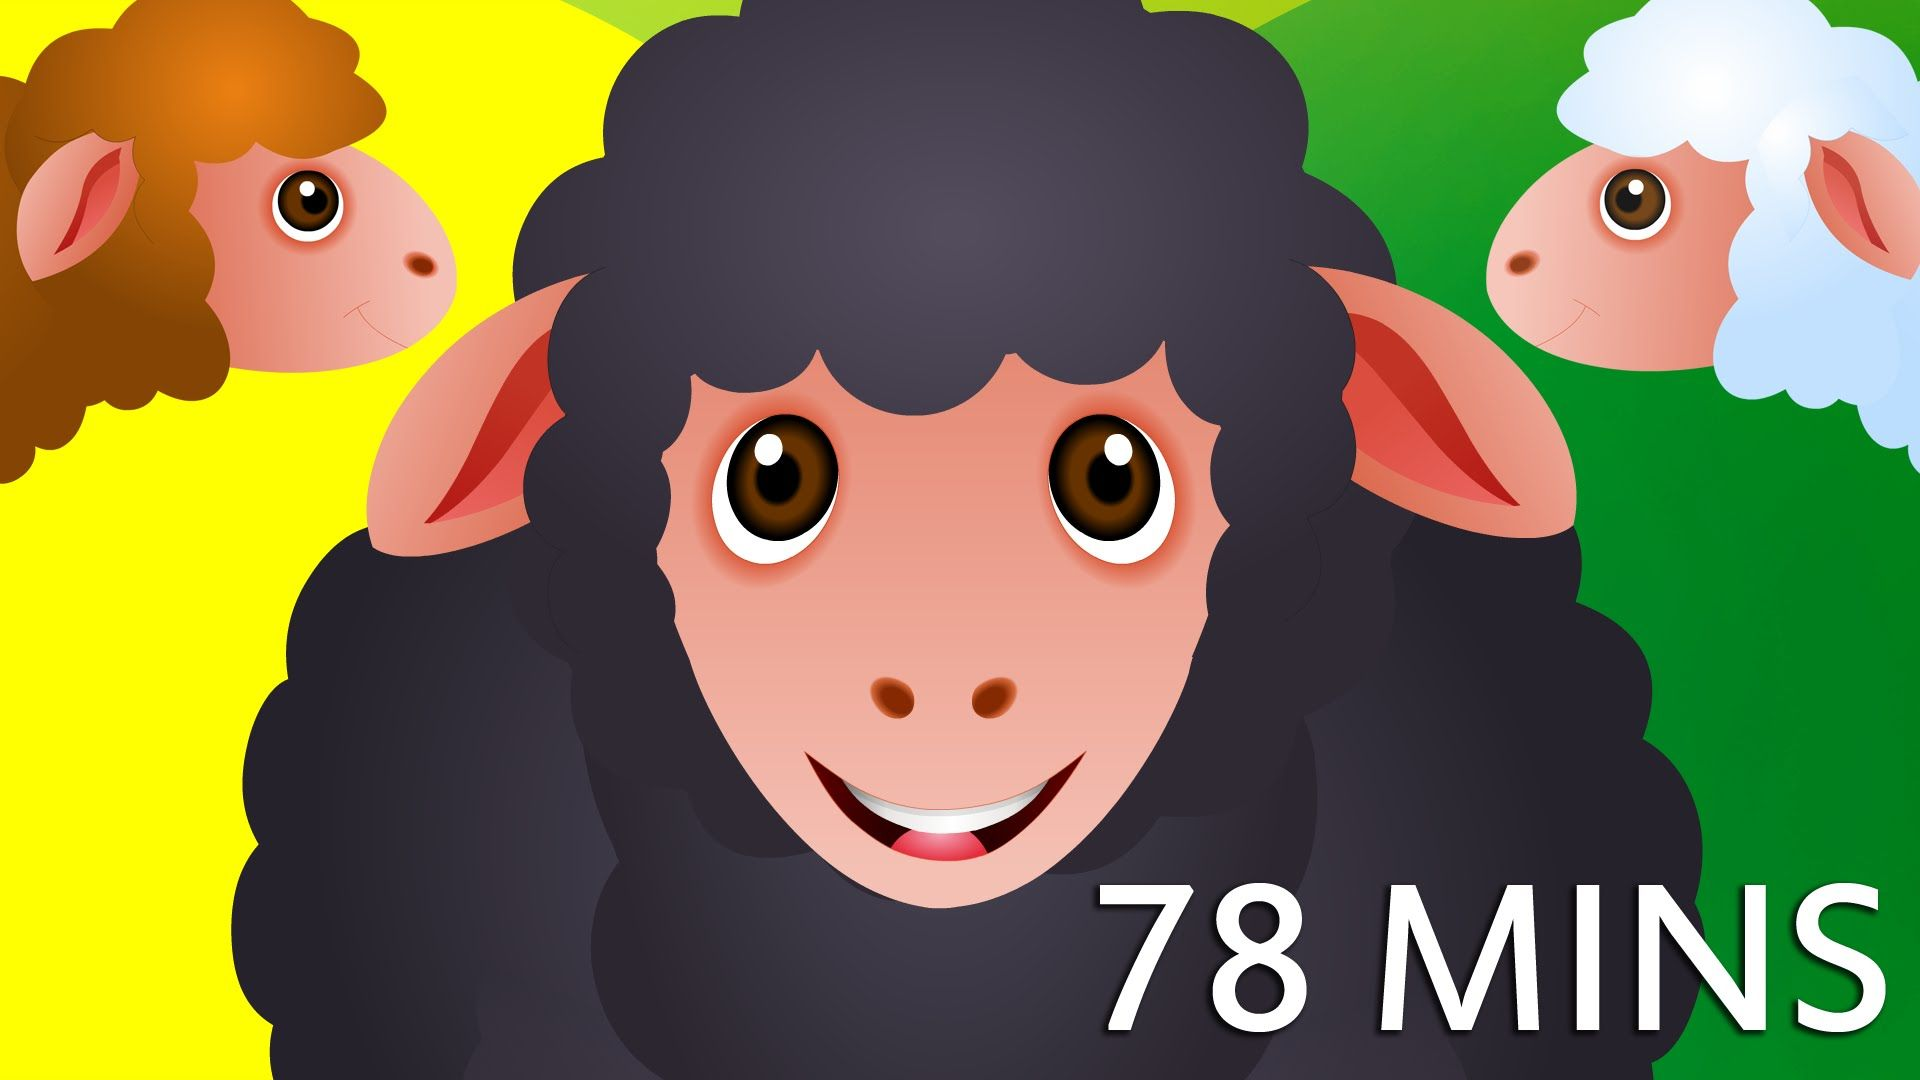 Baa Baa Black Sheep And Many More Kids Songs Popular Nursery Rhymes Collection By Chuchu Tv Kids Songs Nursery Rhymes Collection Kids Nursery Rhymes